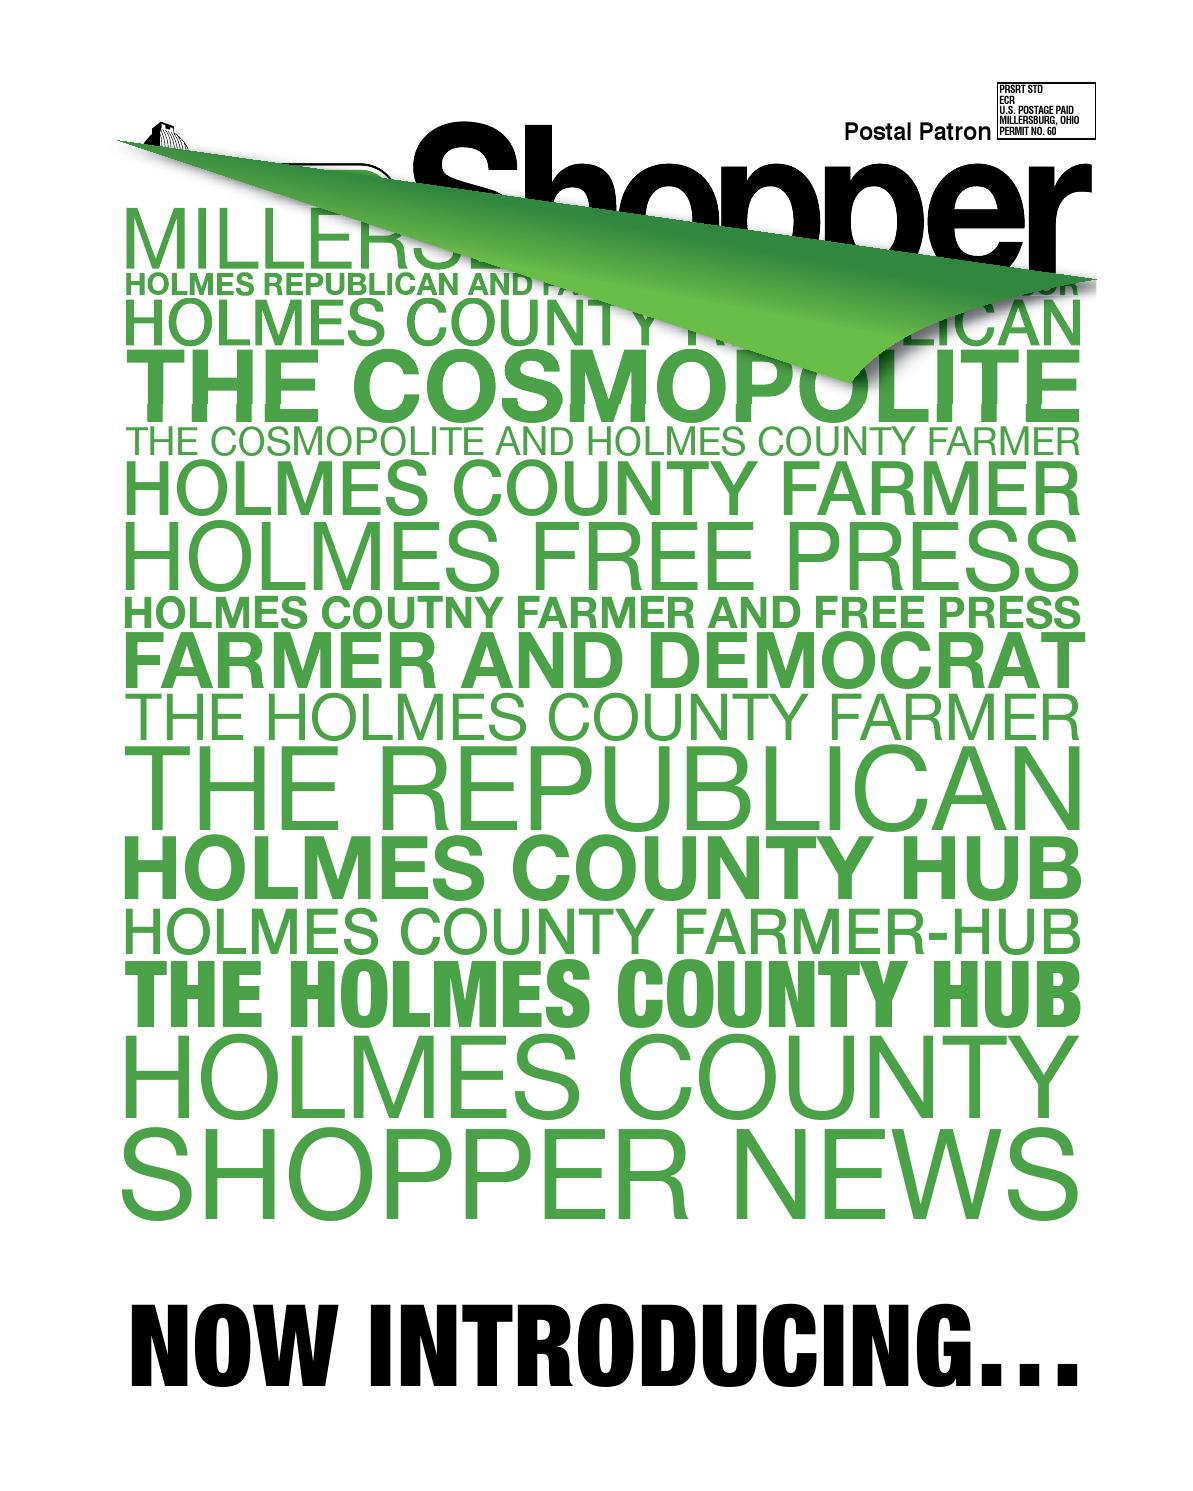 Holmes county hub shopper july 11 2013 by gatehouse media neo issuu fandeluxe Images